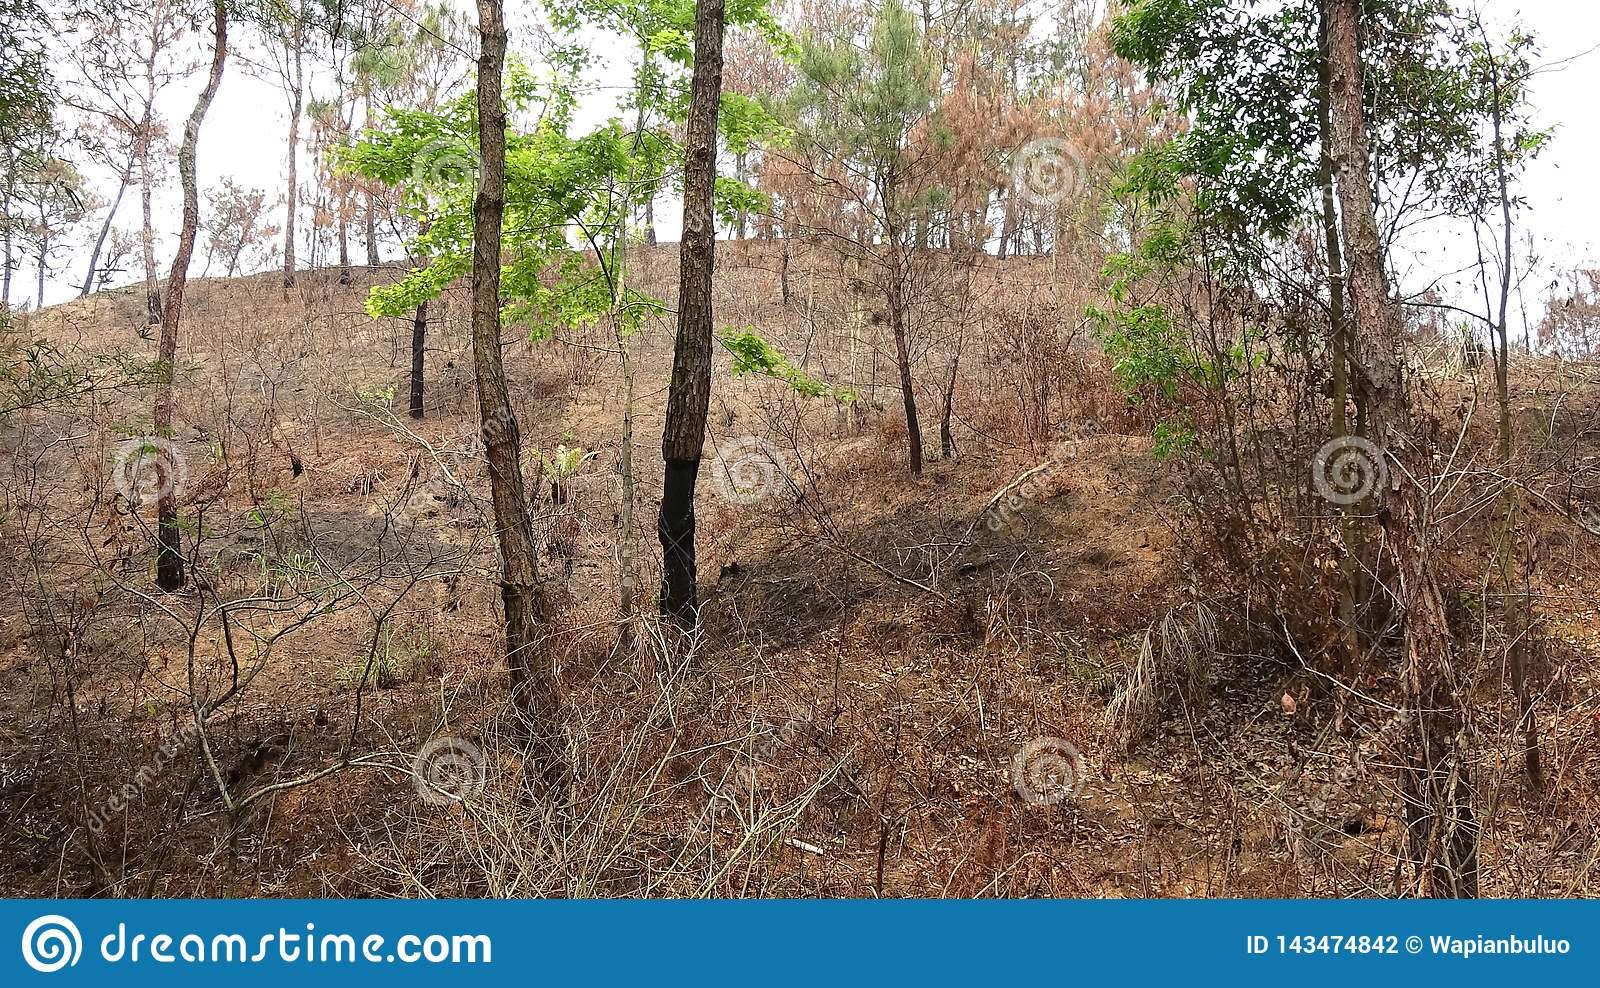 In the mountain burned by fire, there is a small tree that grows green leaves.